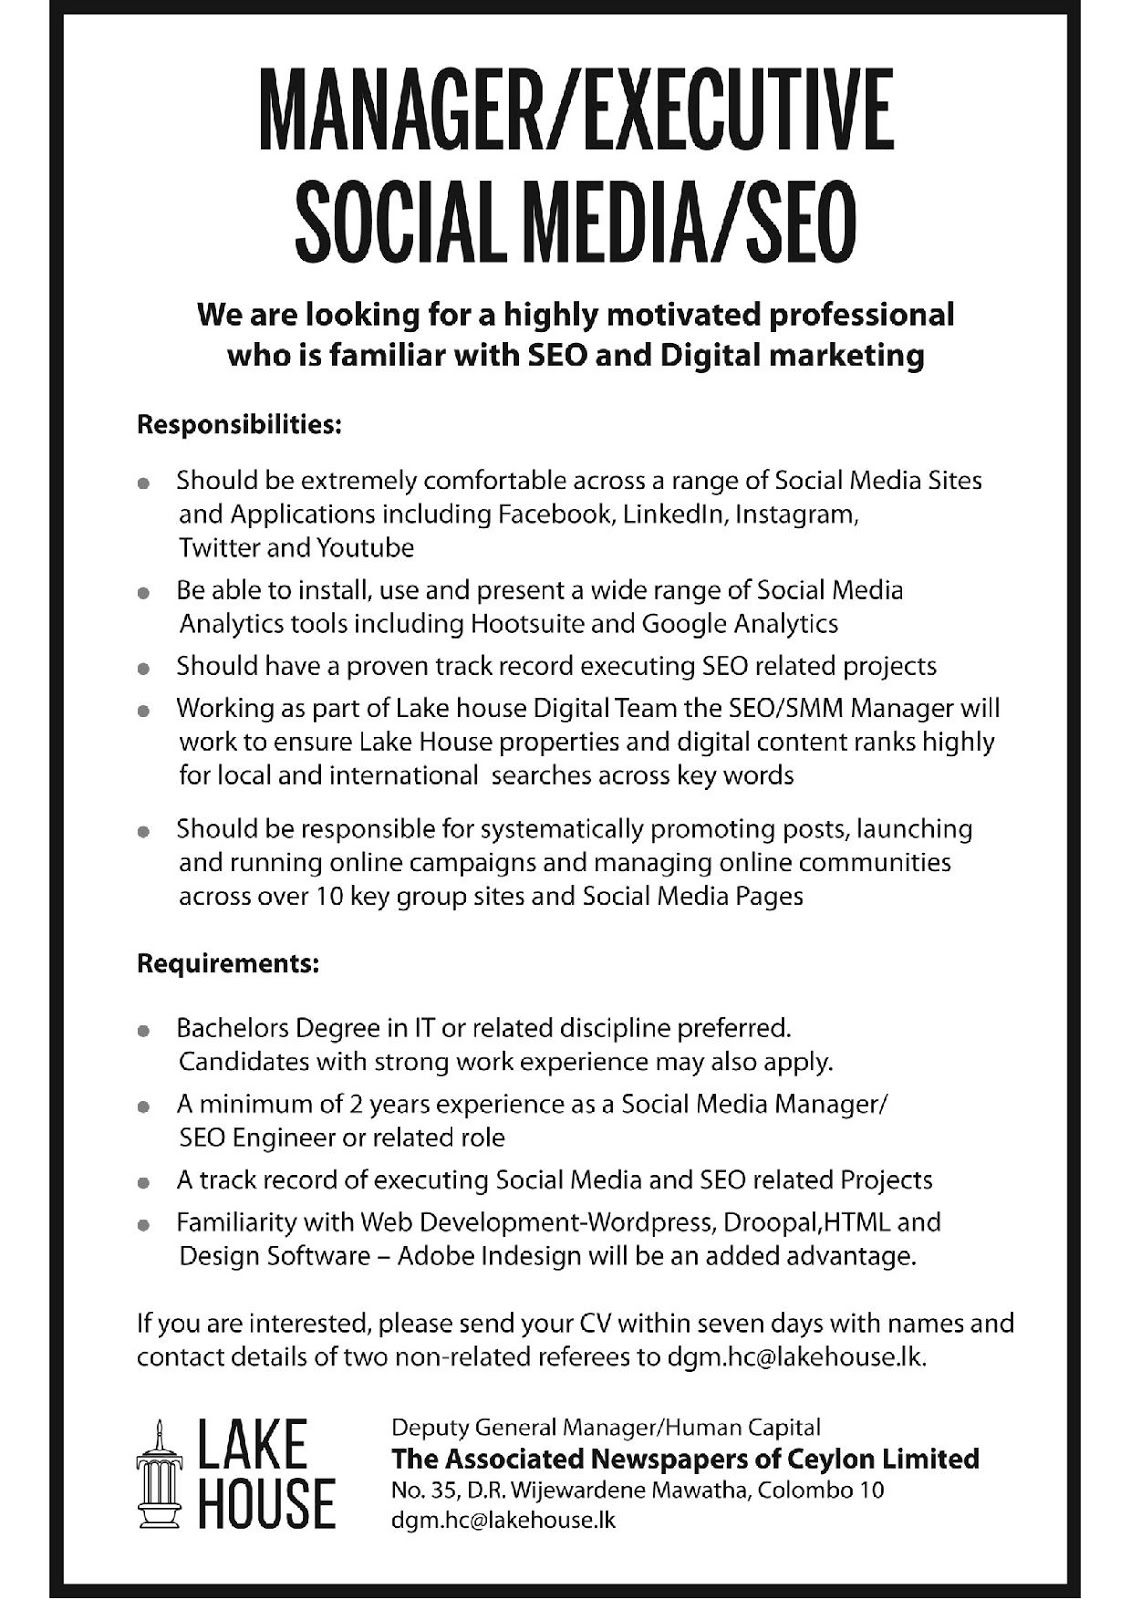 manager executive social media seo the associated sri lankan government job vacancies at the associated newspapers of ceylon for managers executives